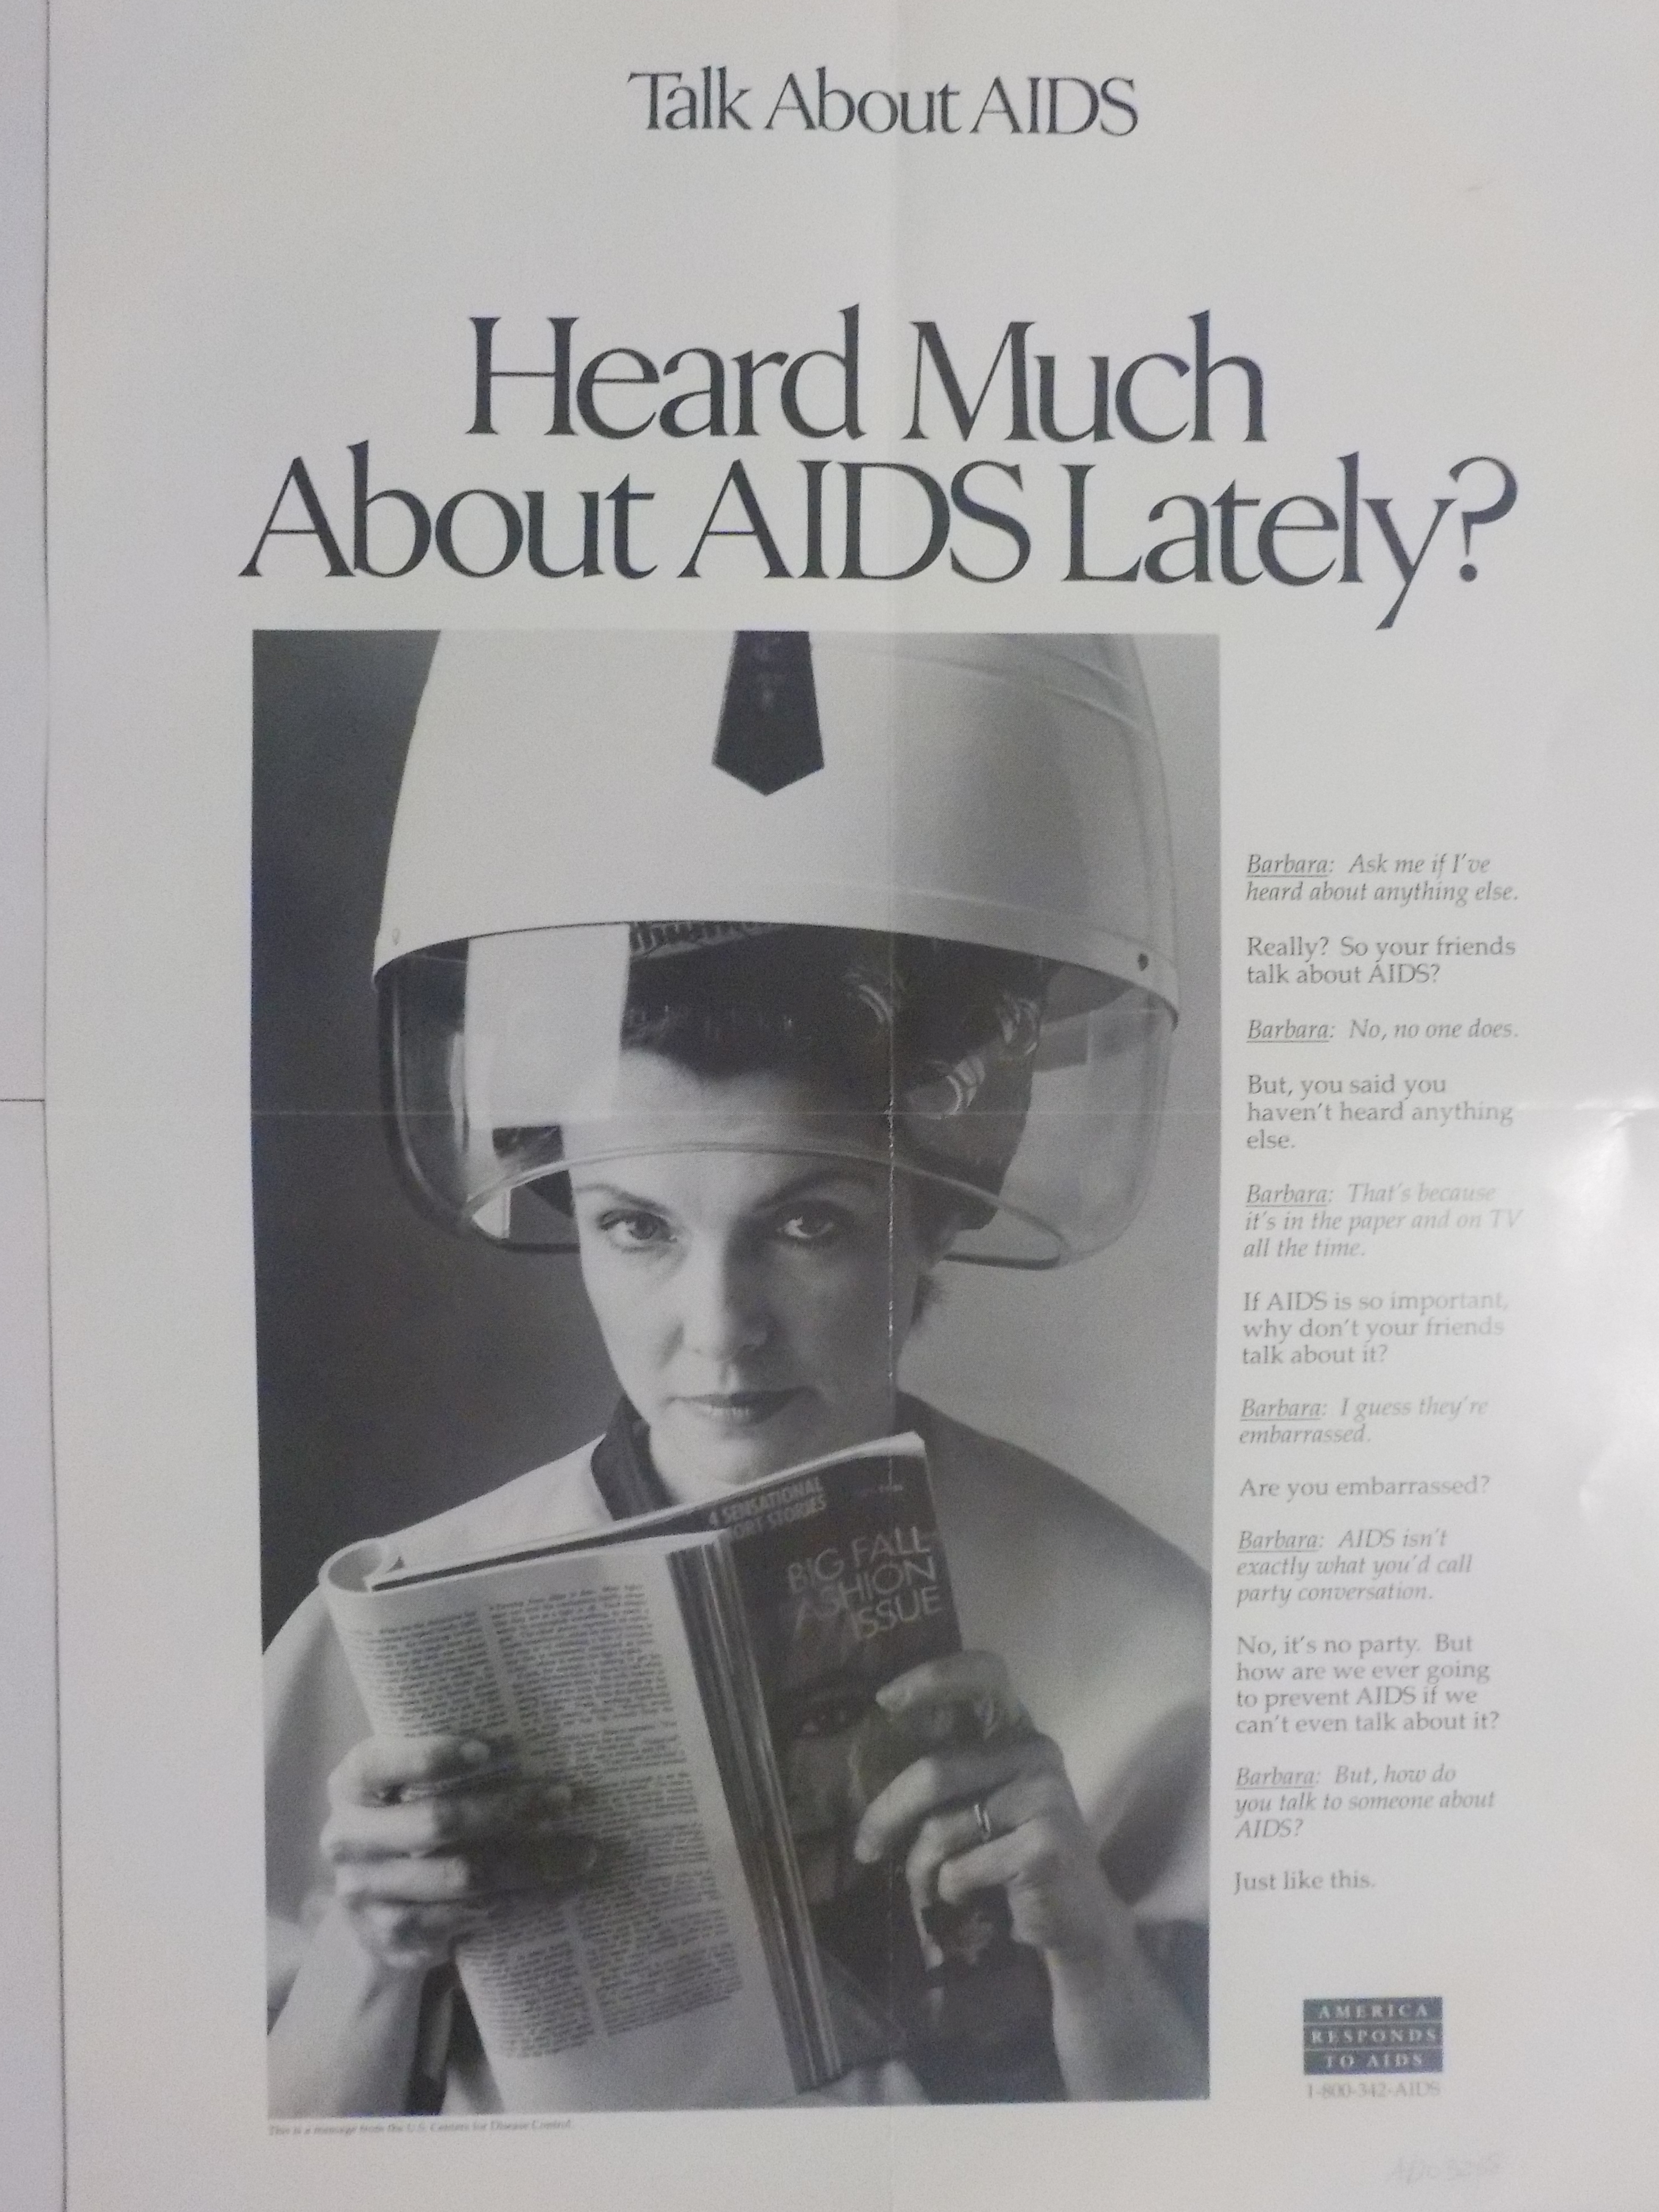 Heard much about AIDS lately?